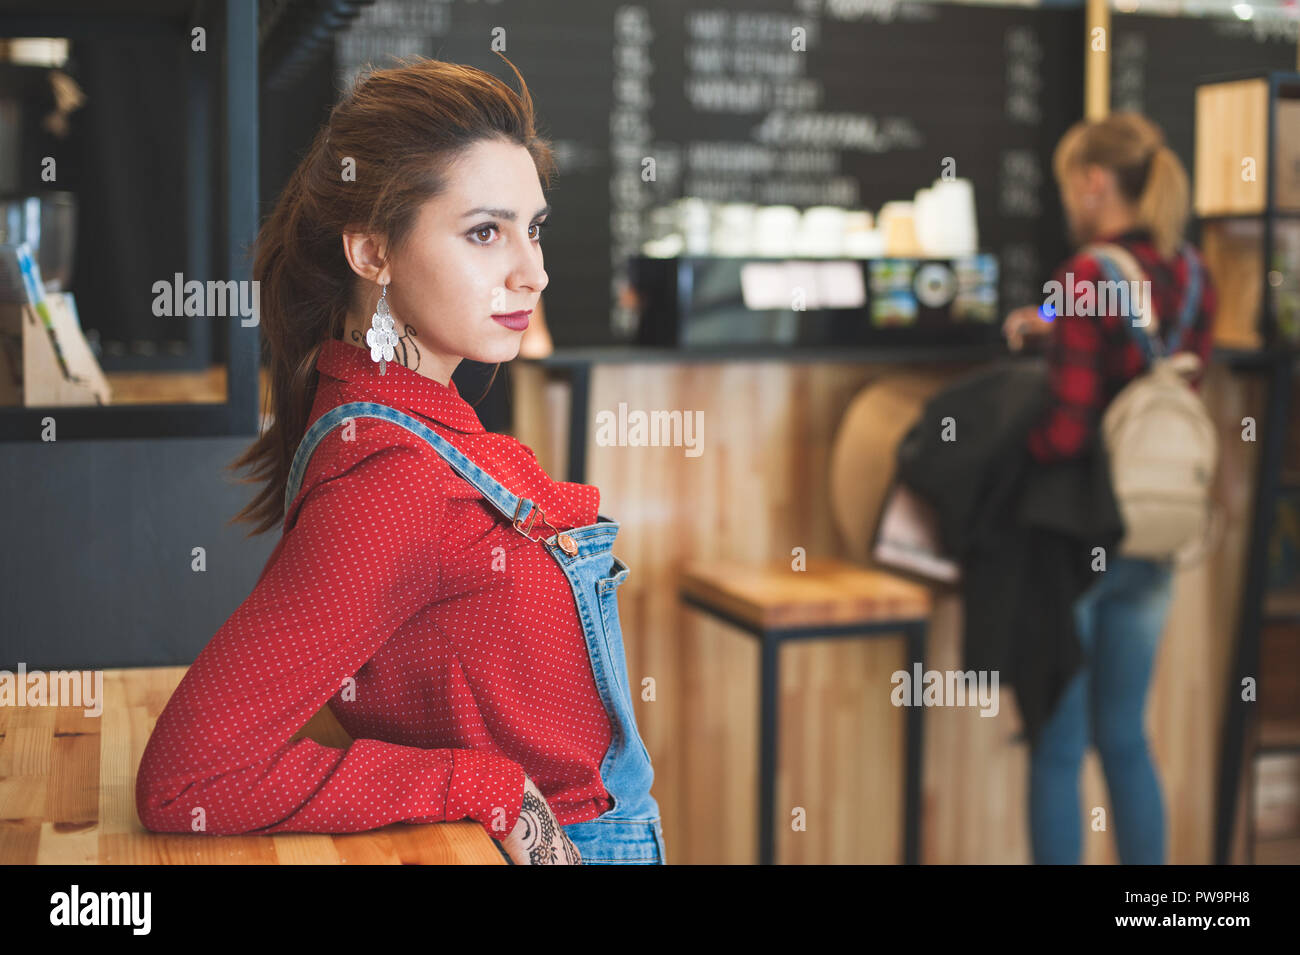 two young caucasian girls wearing jeans in modern design coffeehouse during coffee break - Stock Image